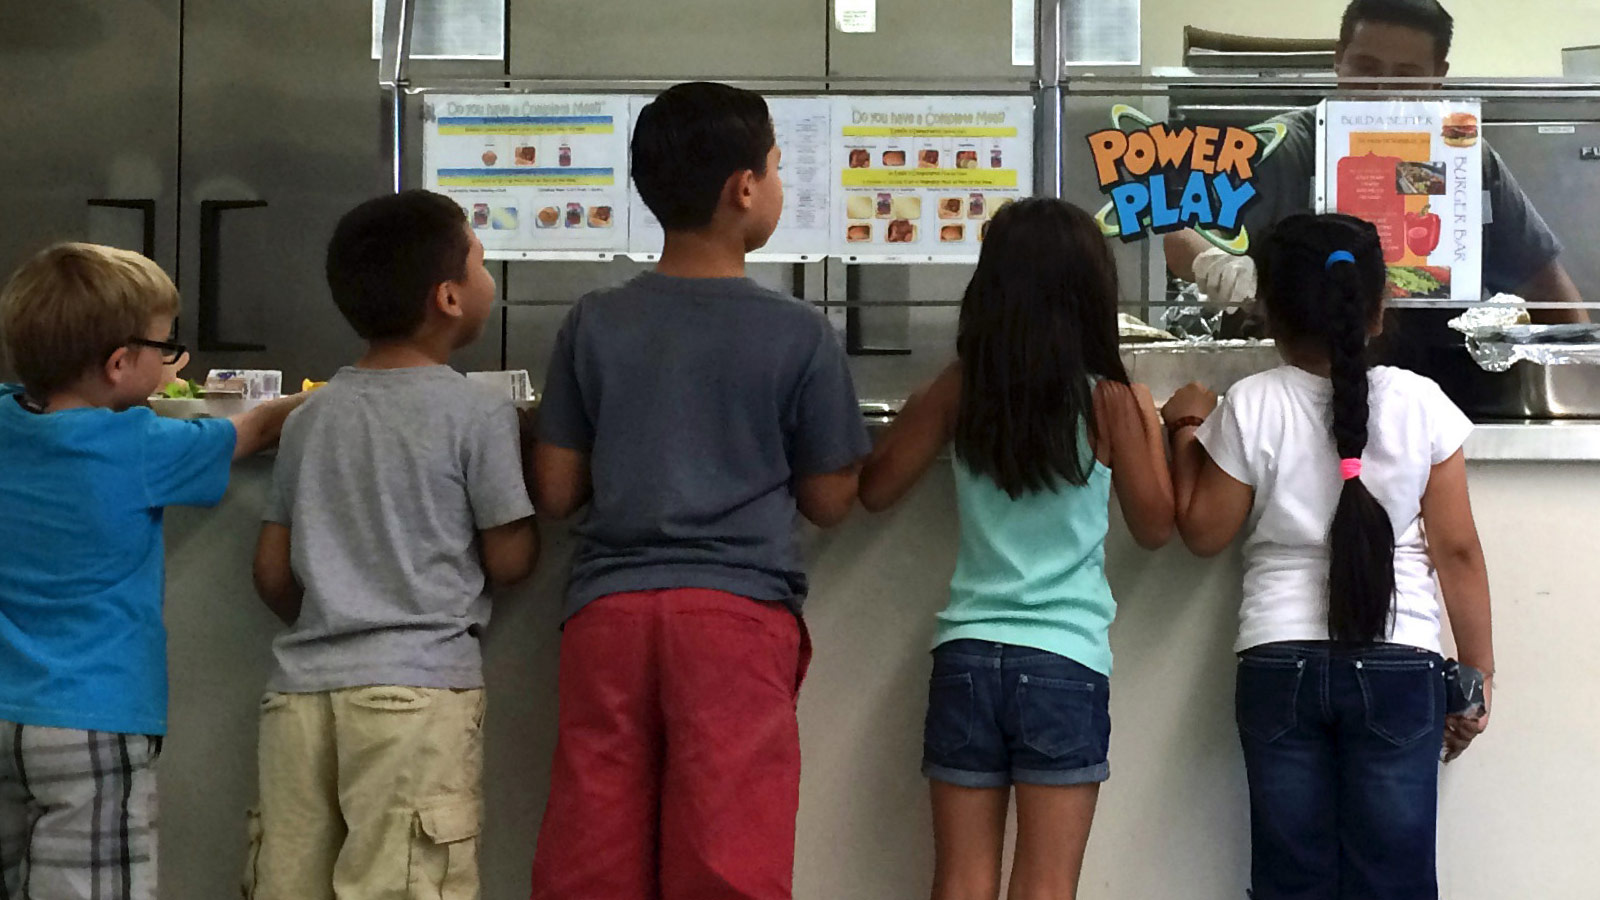 First graders at Washington Elementary School in Riverside, California, line up for hot food after choosing fruits and vegetables from the salad bar on October 13, 2015